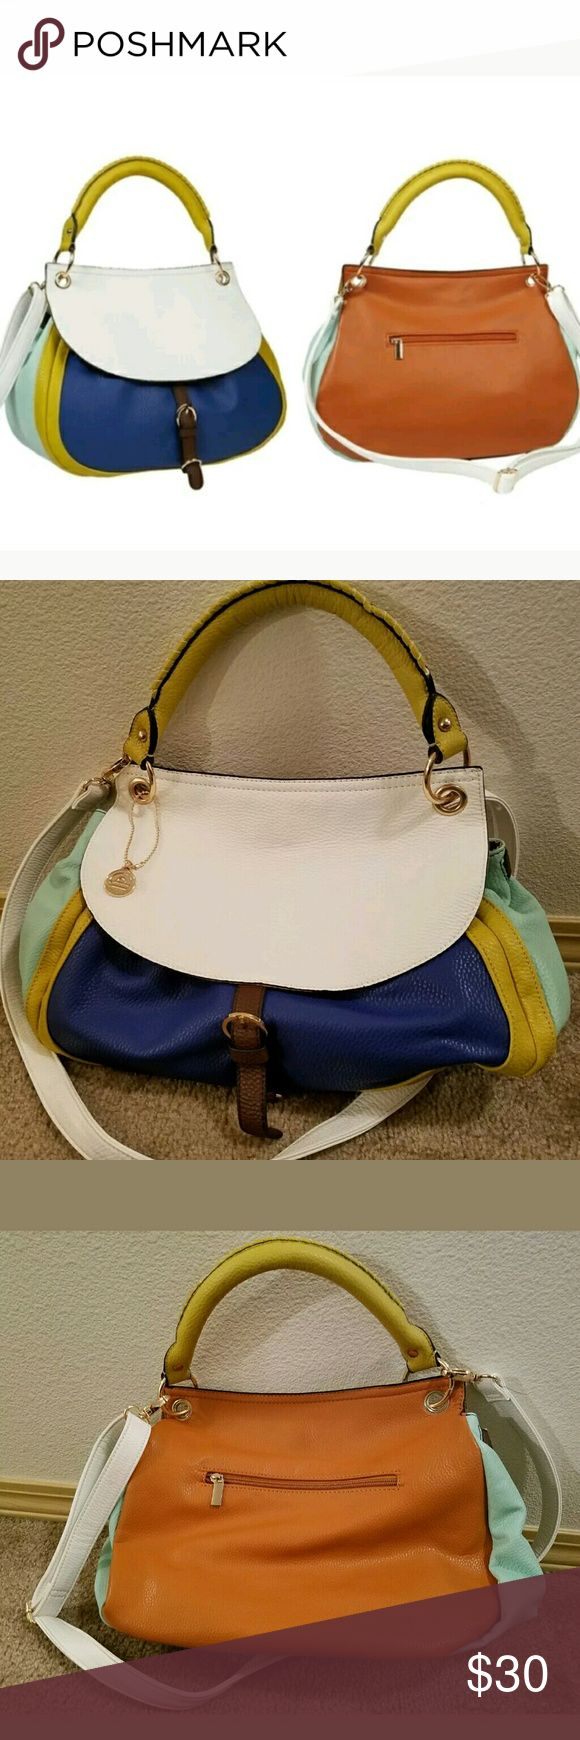 Big Buddha Color Block Crossbody Handbag This is a really great pre-owned Big Buddha Color Block Crossbody Handbag. It us in really good pre-owned condition. There are 2 scuff marks on the shoulder strap that can be seen in the last 2 pictures. If those marks weren't there it would appear that the bag had not been used. It has an adjustable shoulder strap. Show some style this spring with this beautiful spring color block bag. Big Buddha Bags Crossbody Bags